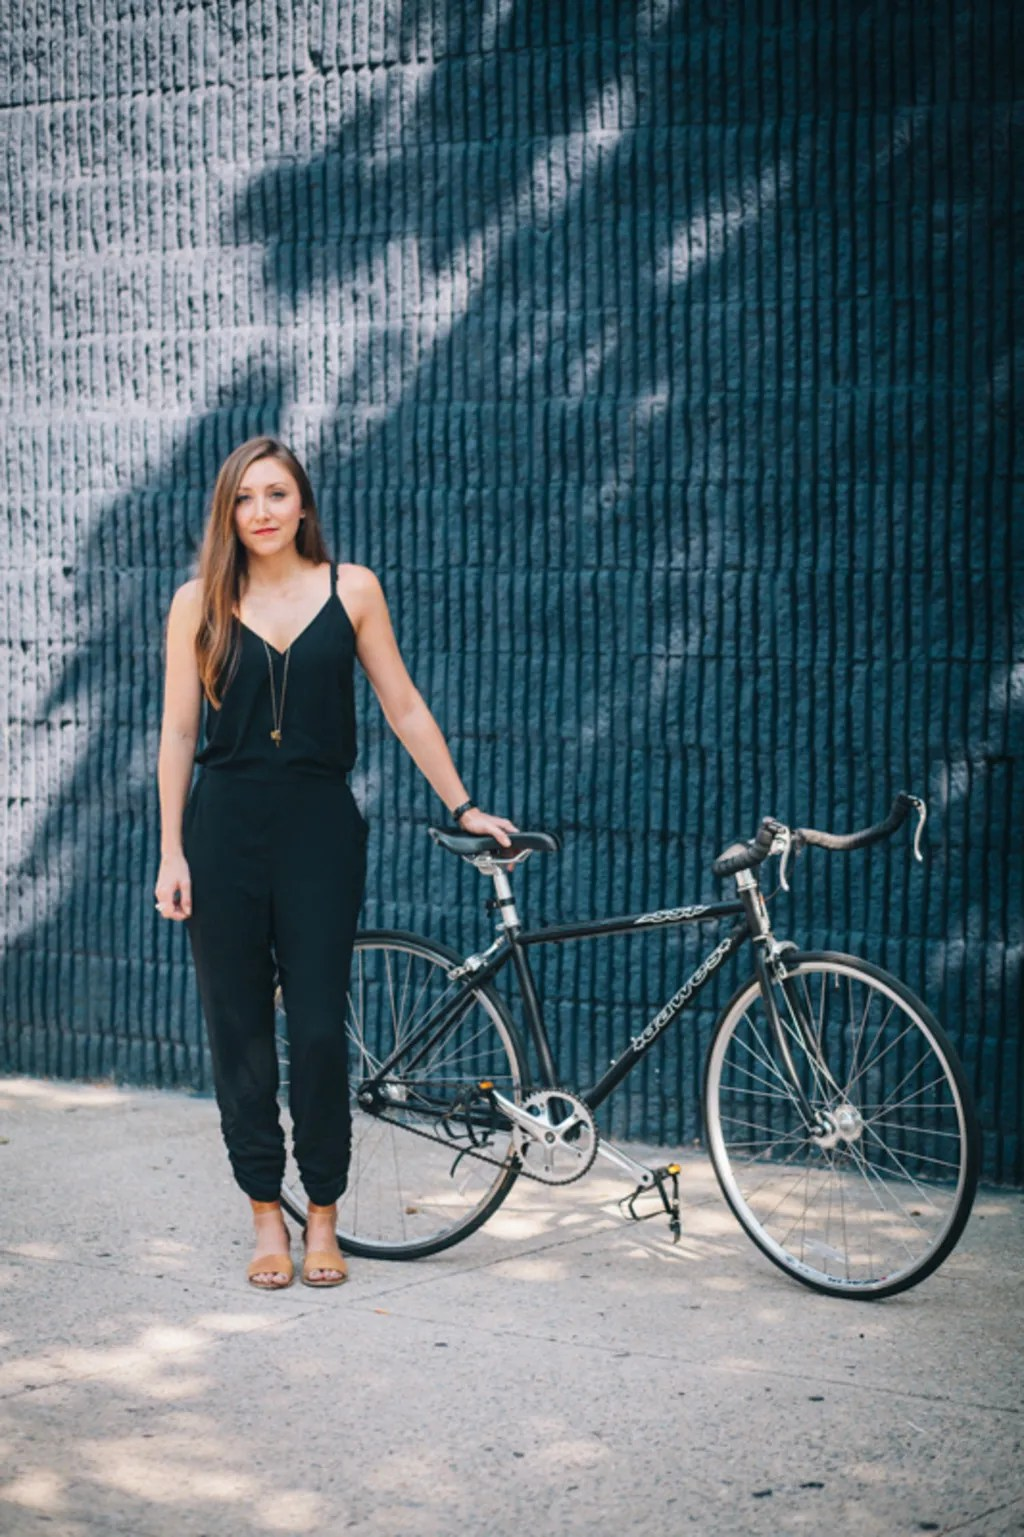 Summer Outfits You Can Wear to Ride a Bike  Glamour